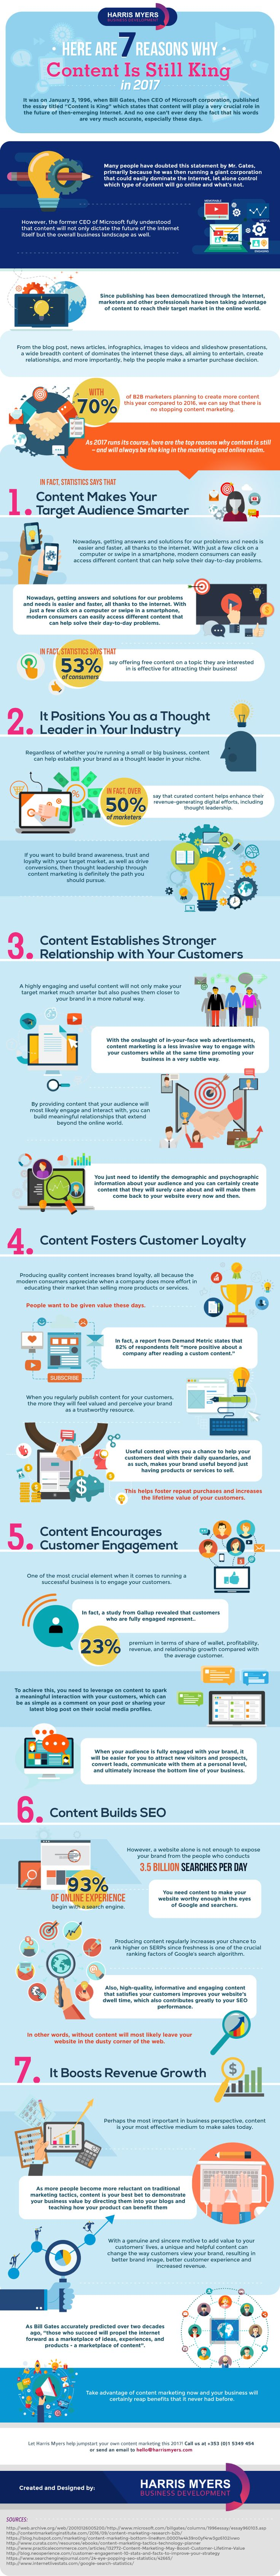 This infographic outlines the key elements of why content marketing is a successful tactic, and how it works.